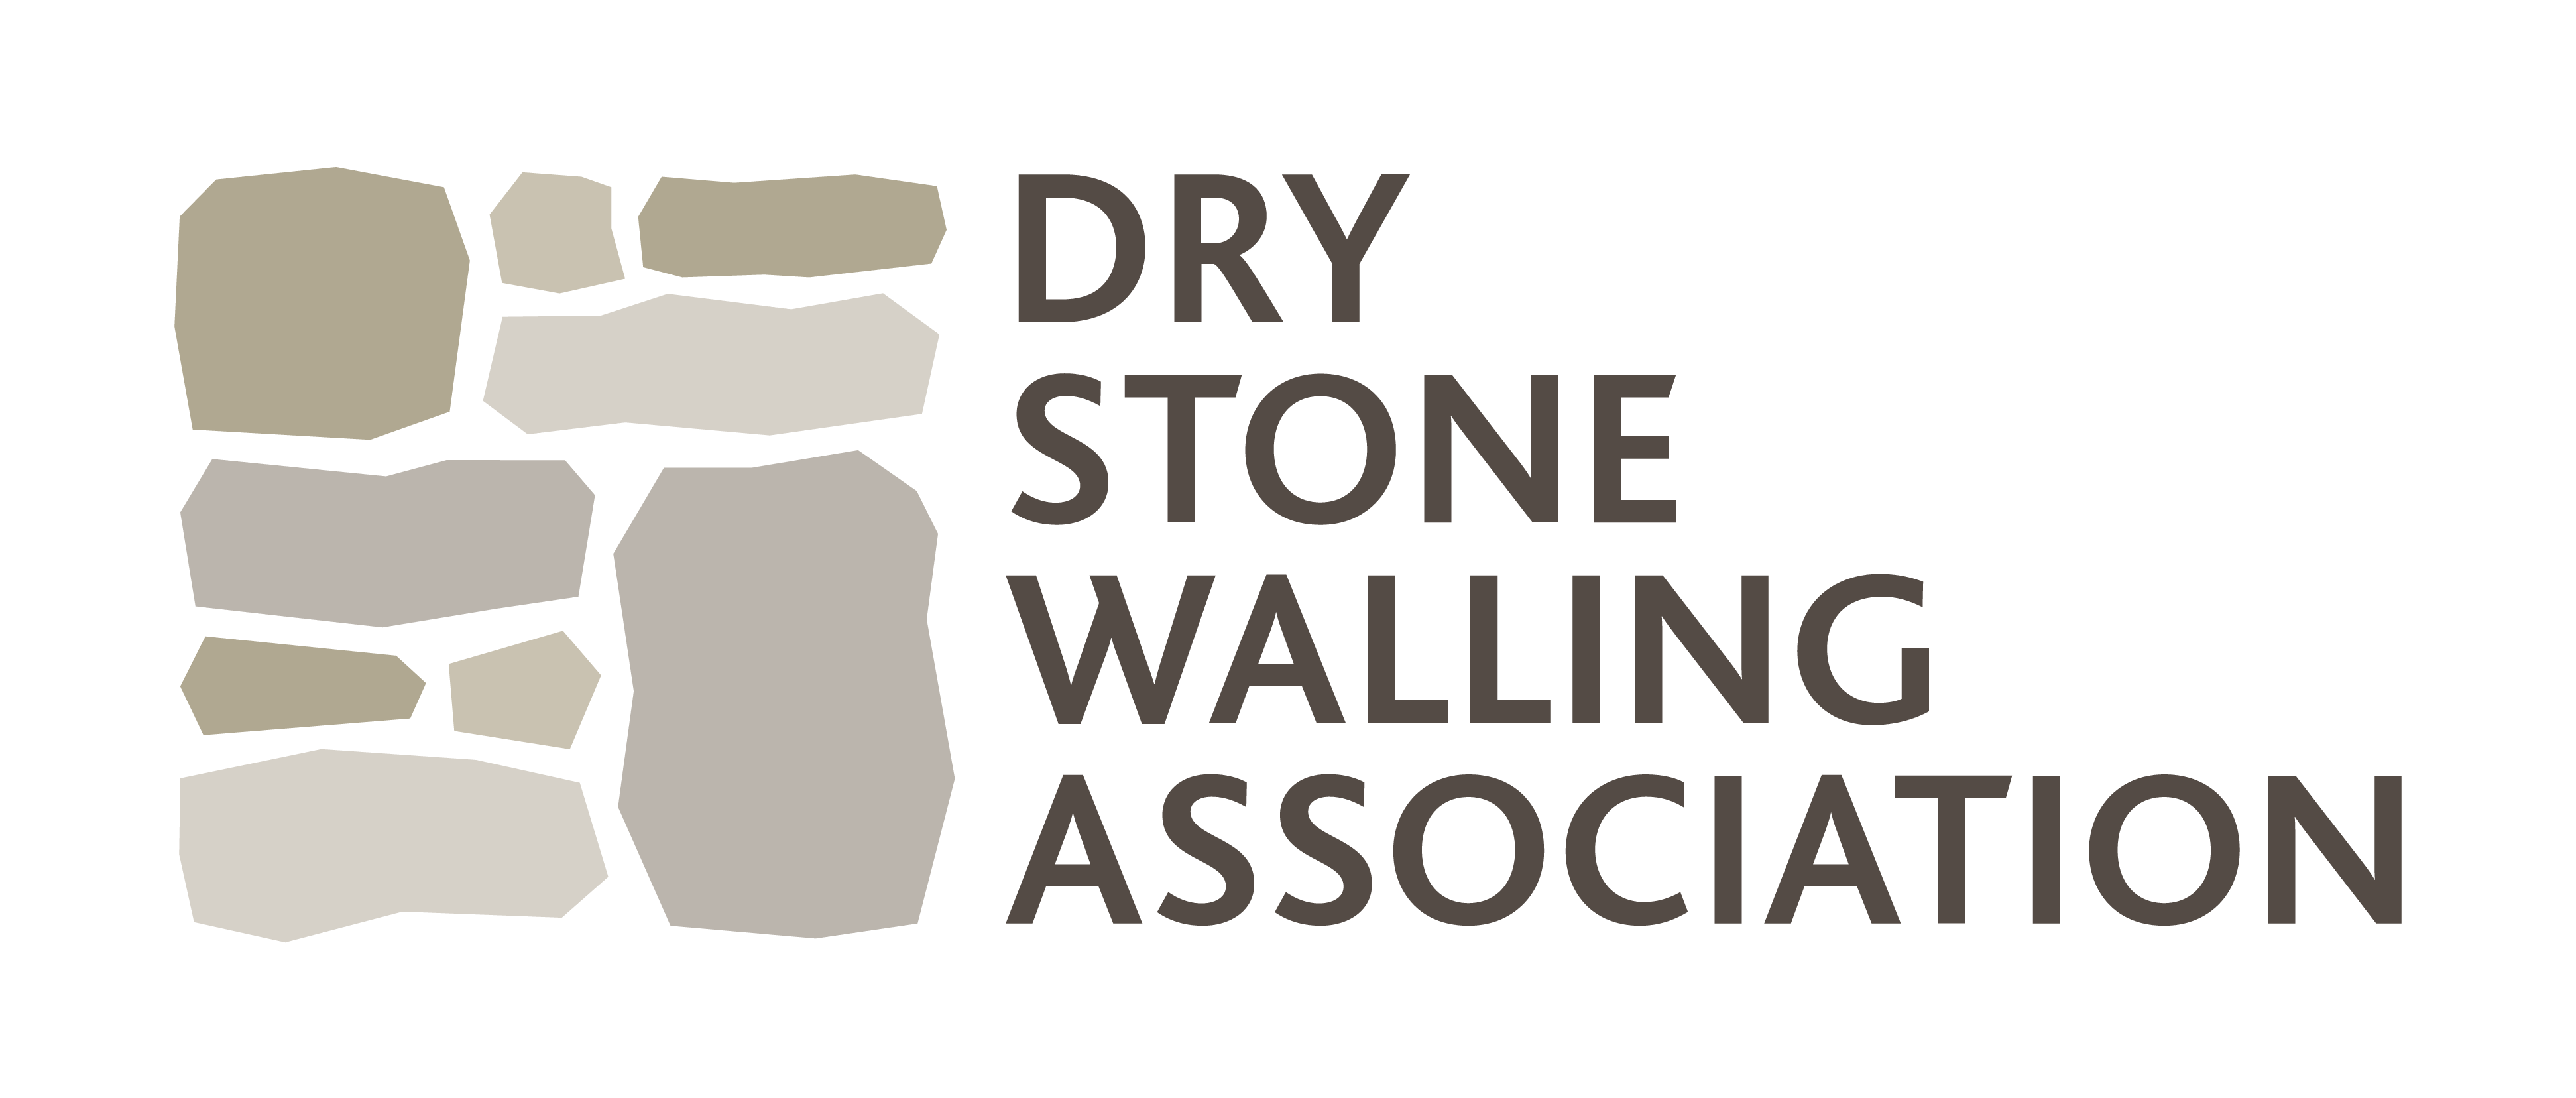 dry stone walling association logo